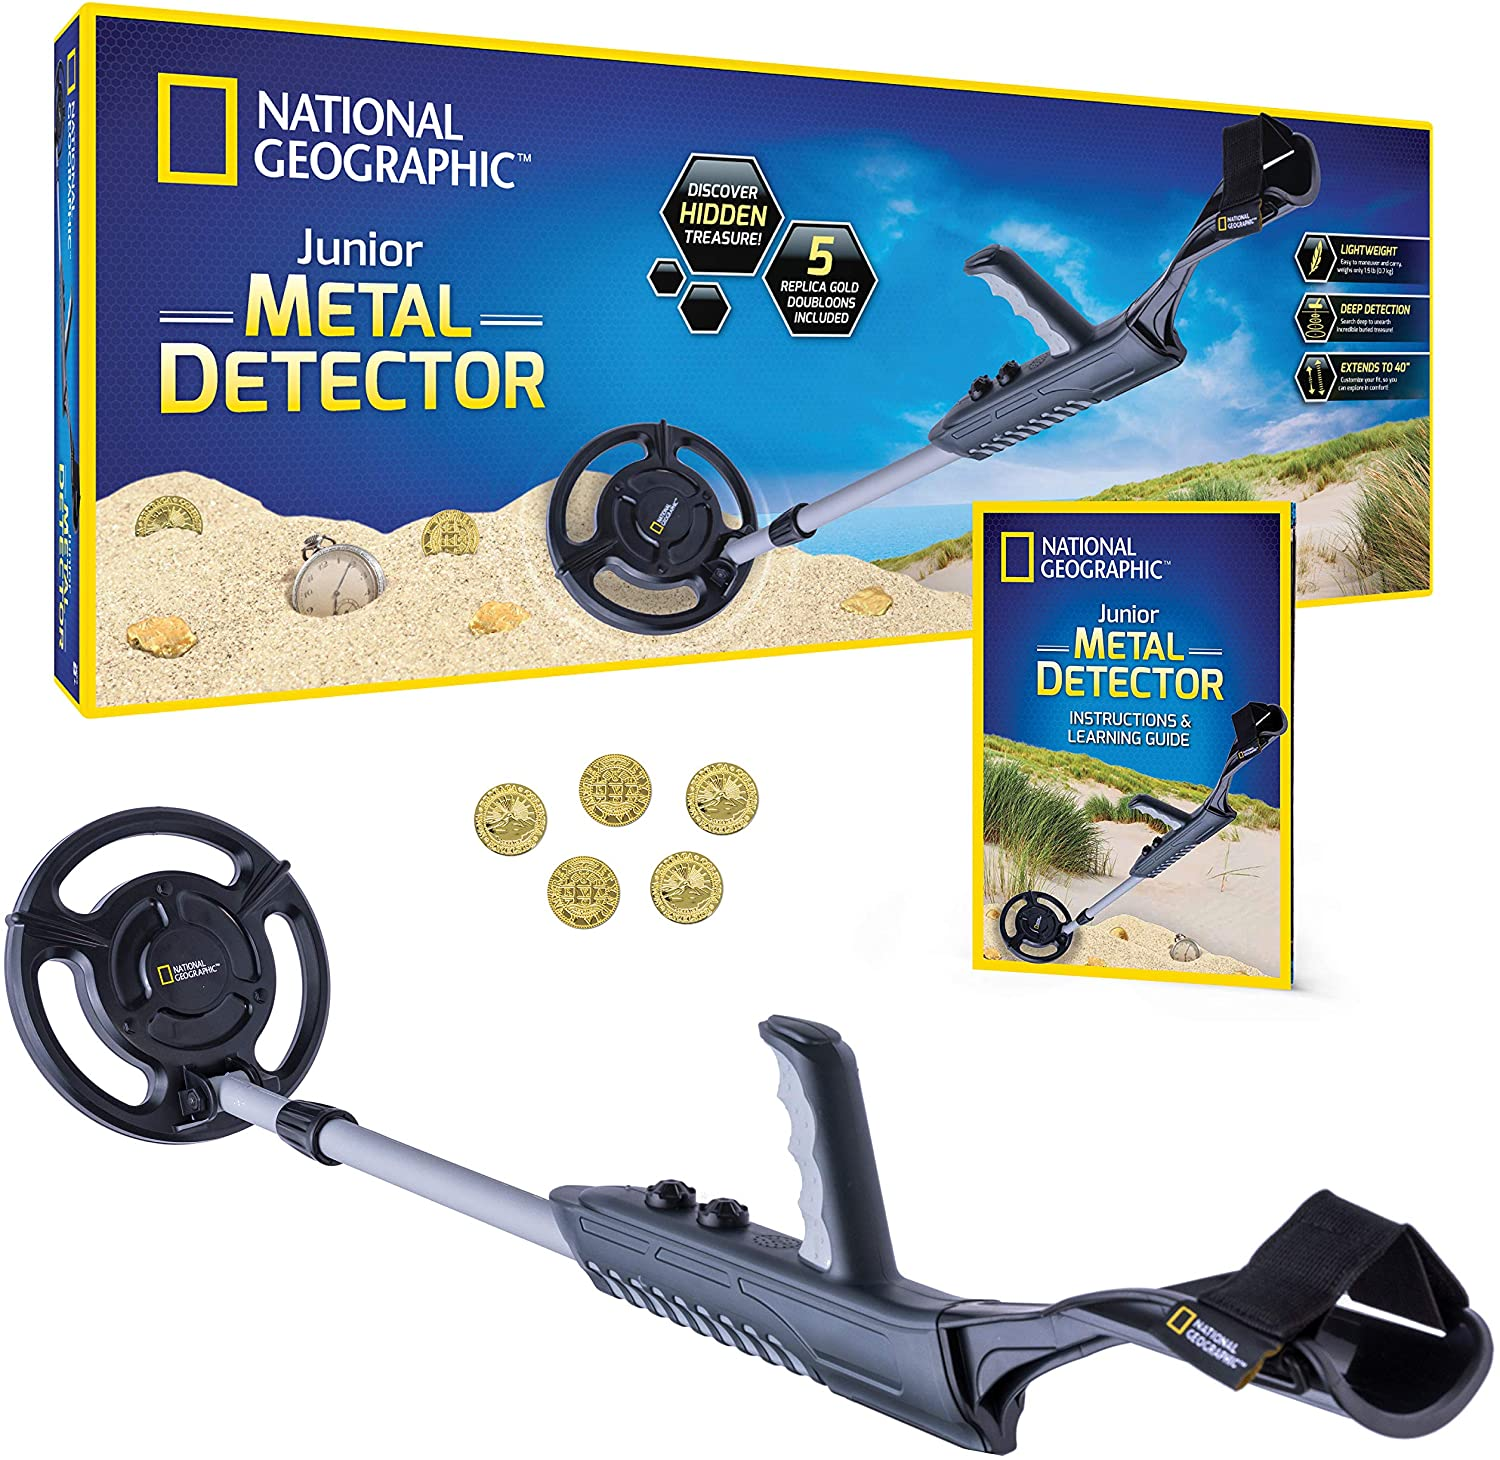 NATIONAL GEOGRAPHIC Junior Metal Detector Los Angeles Mall Wat for 7.5